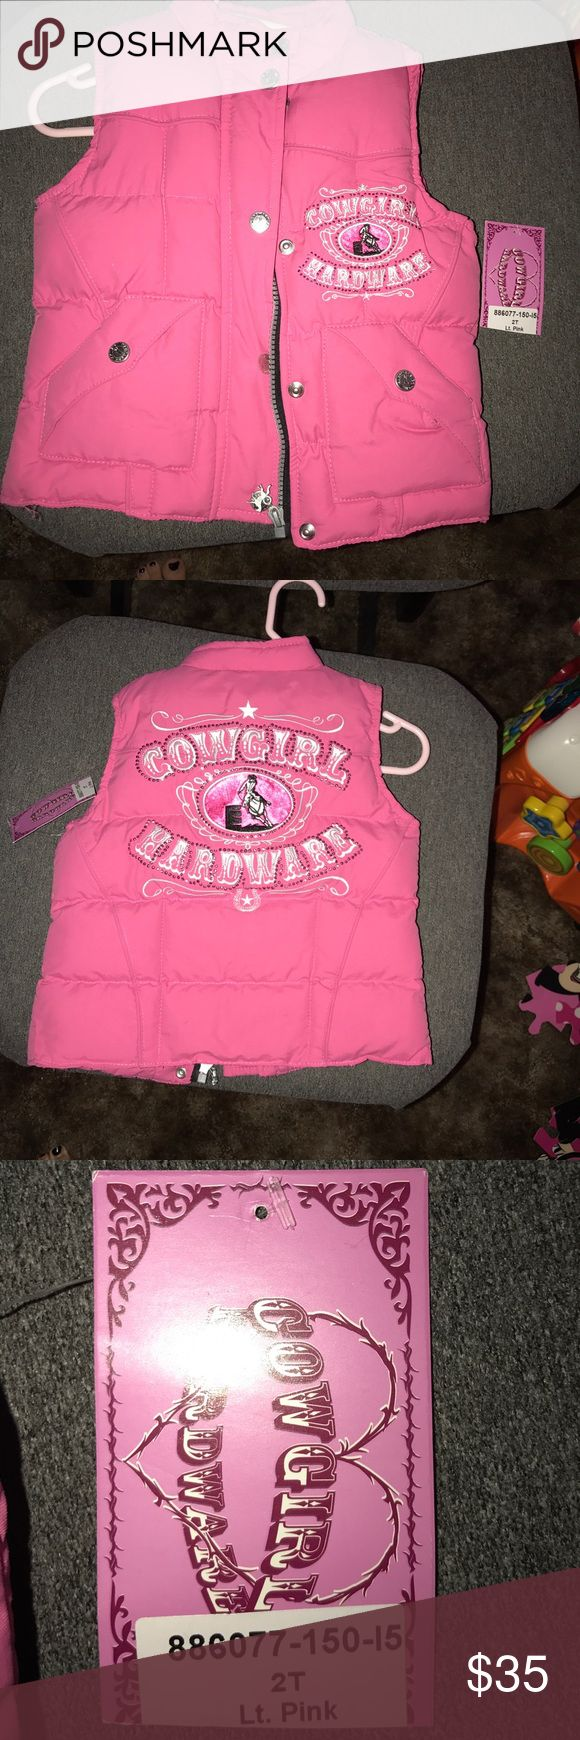 Cowgirl Hardware Puffy Vest - NWT - 2T Cowgirl Hardware Puffy Vest - NWT - 2T Cowgirl Hardware Jackets & Coats Vests